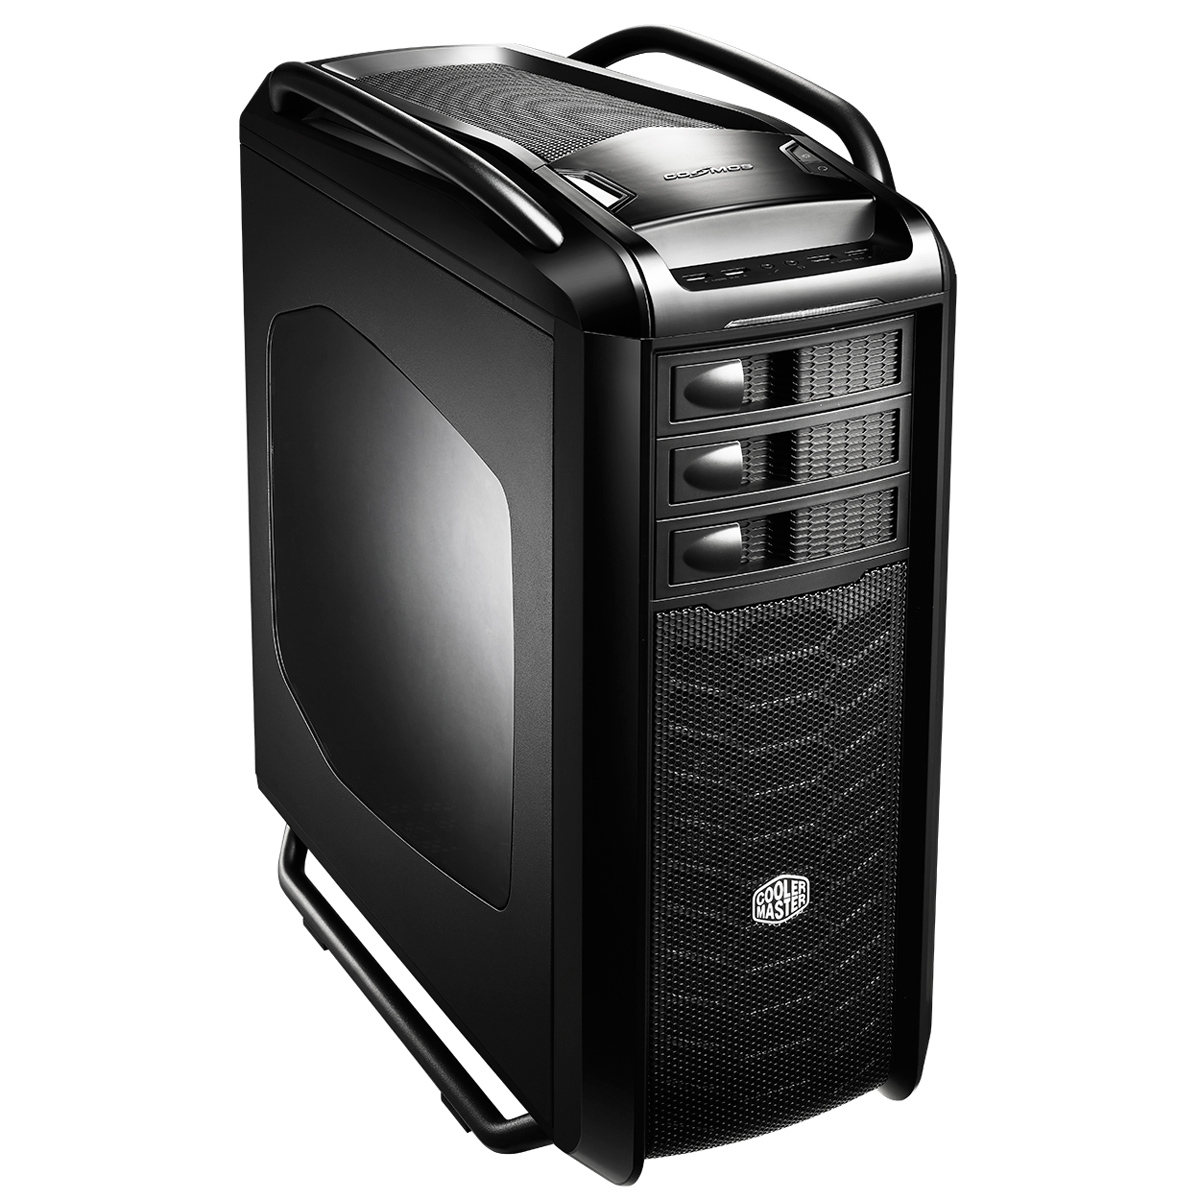 cooler master cosmos se windowed bo tier pc cooler master ltd sur ldlc. Black Bedroom Furniture Sets. Home Design Ideas